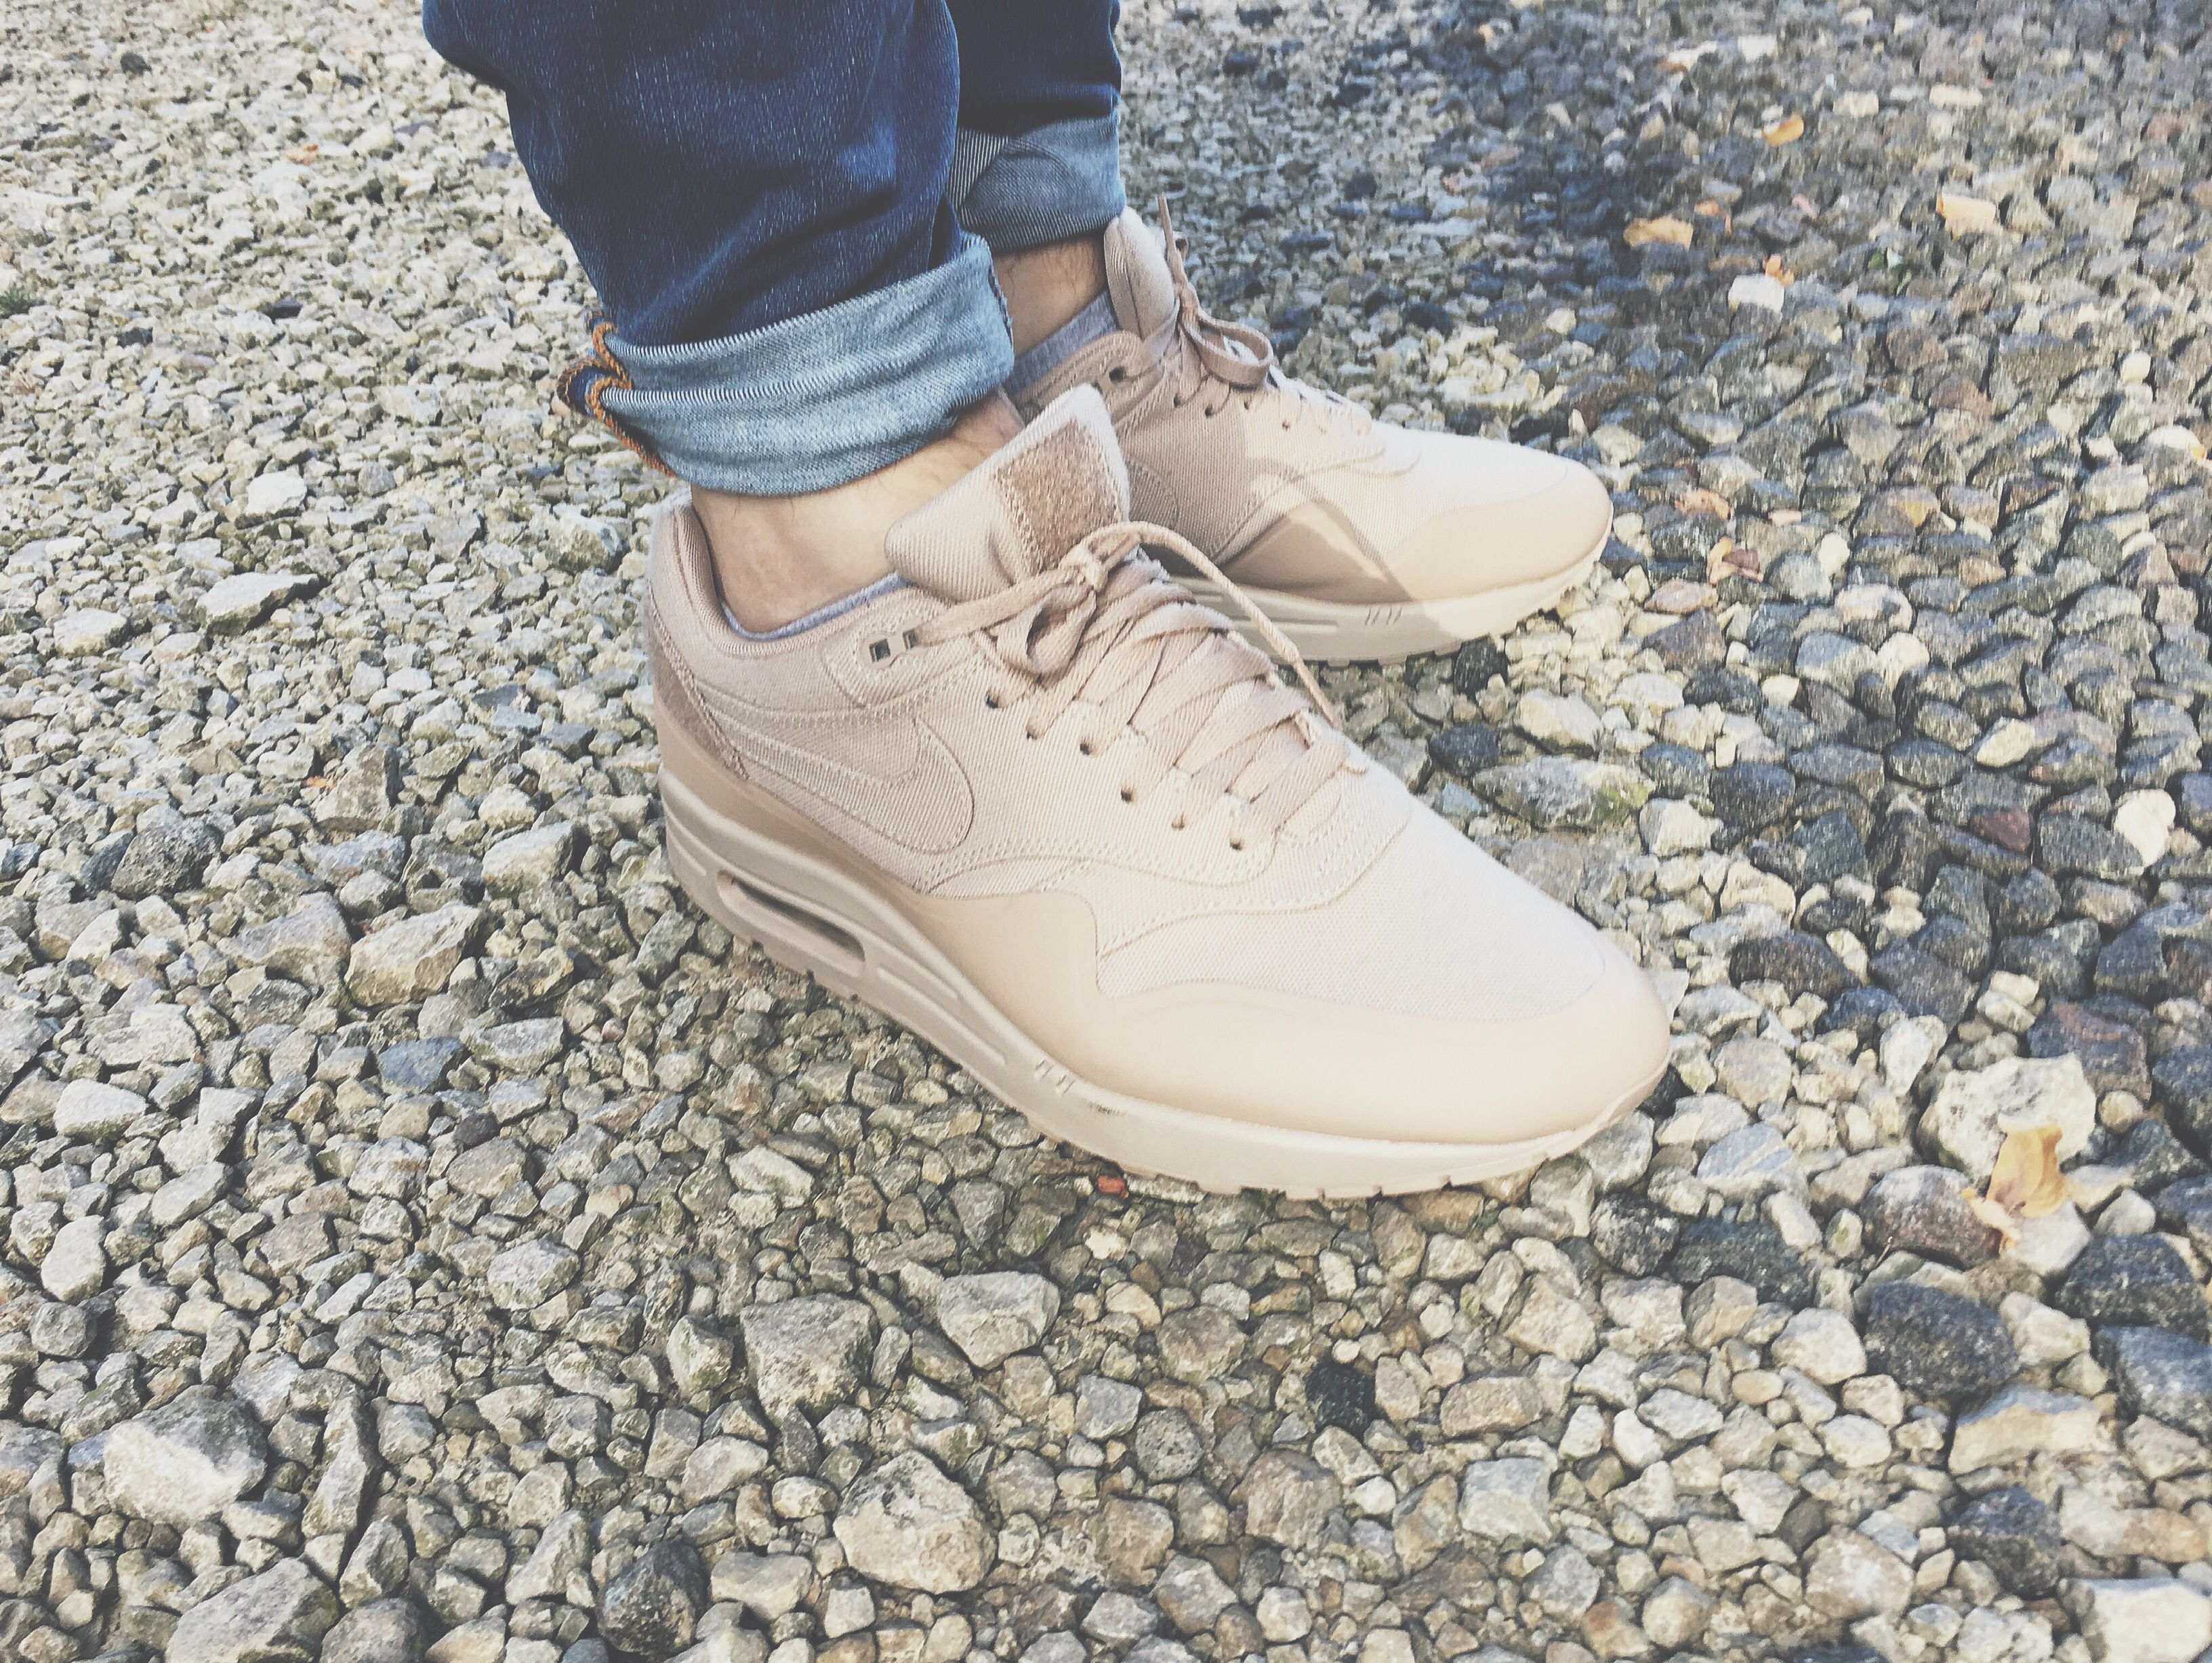 Nike Air Max 1 V SP – Patch Sand Beige on feet